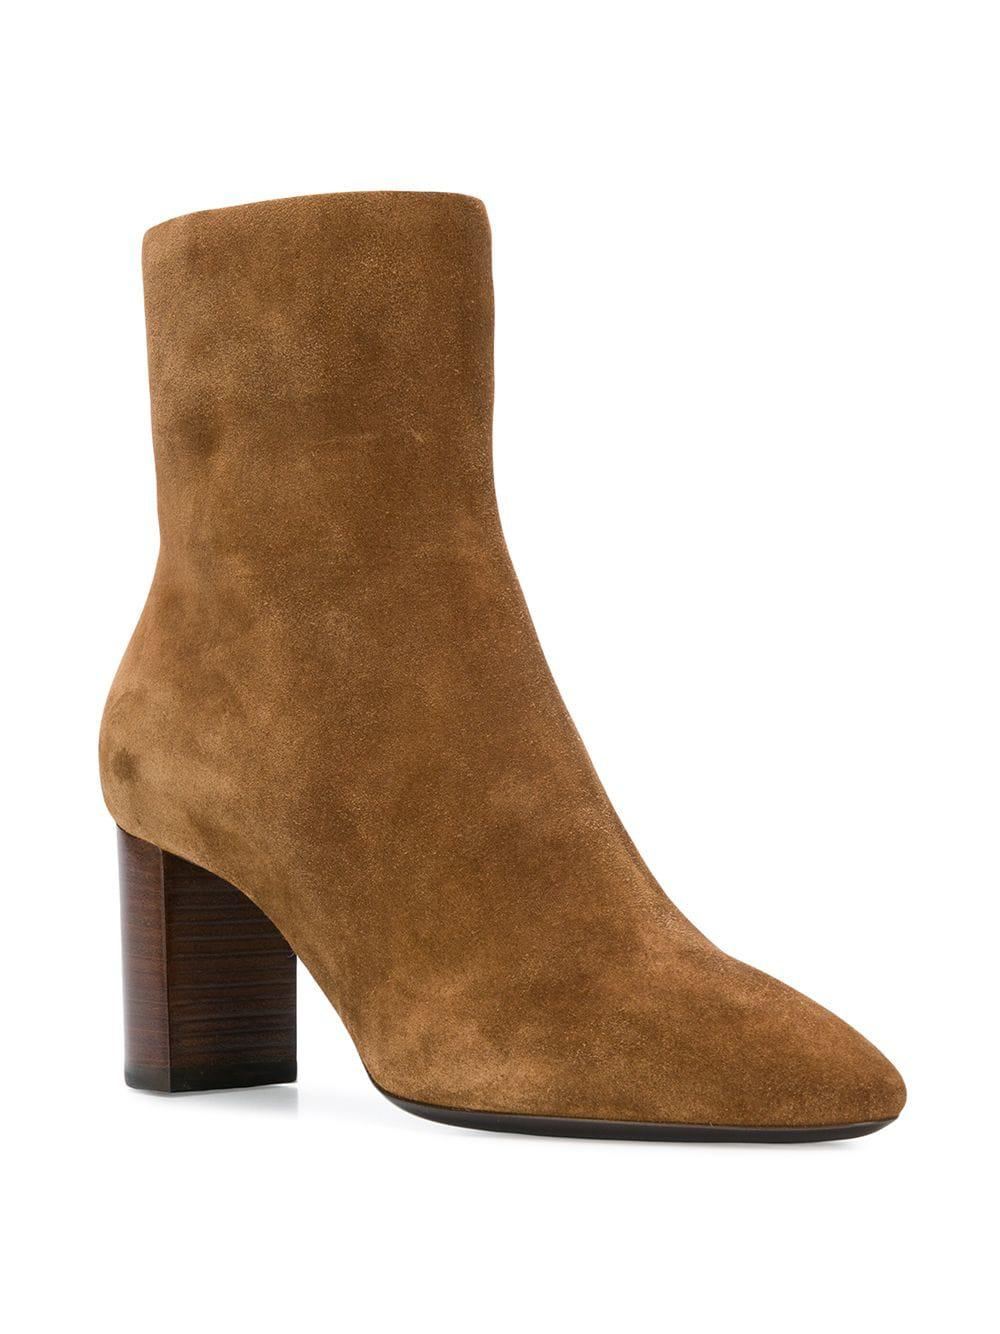 0c2da51f2db Lyst - Saint Laurent Almond Toe Ankle Boots in Brown